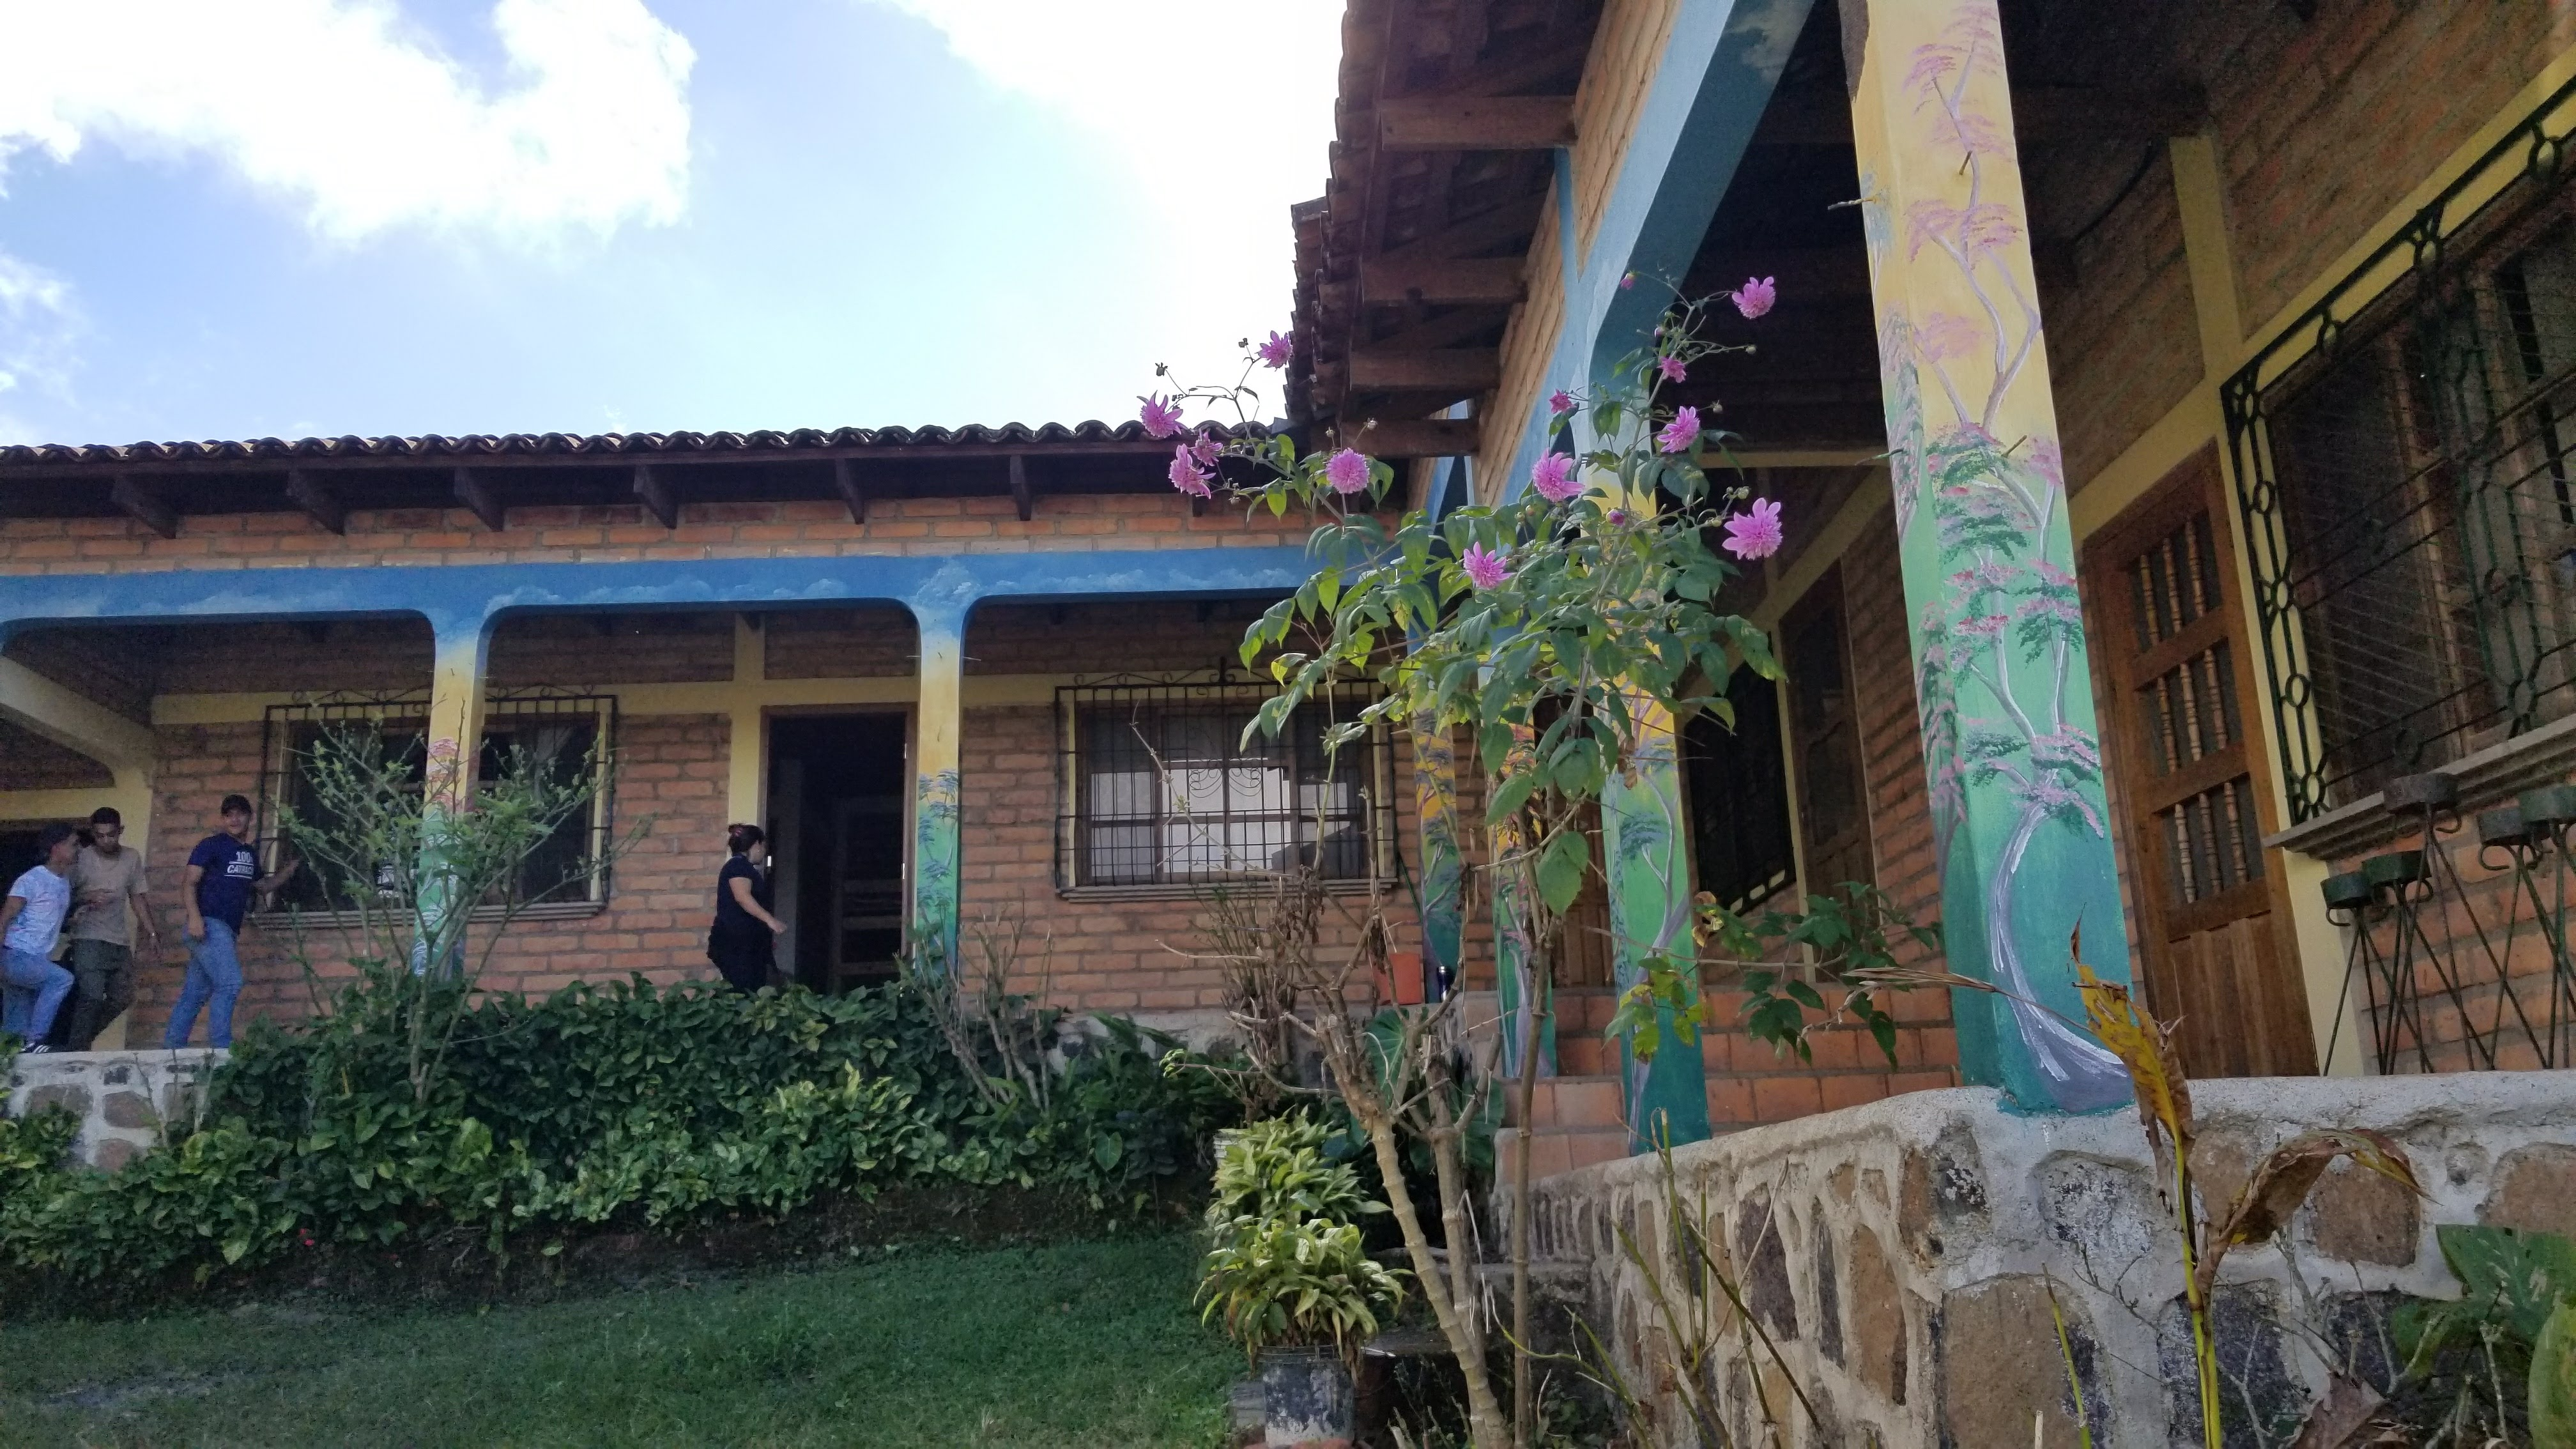 Villa Gracia, or Village of Grace, is the retreat center that the Presbyterian Church of Honduras has purchased with help from PC-USA Presbyterian Women.